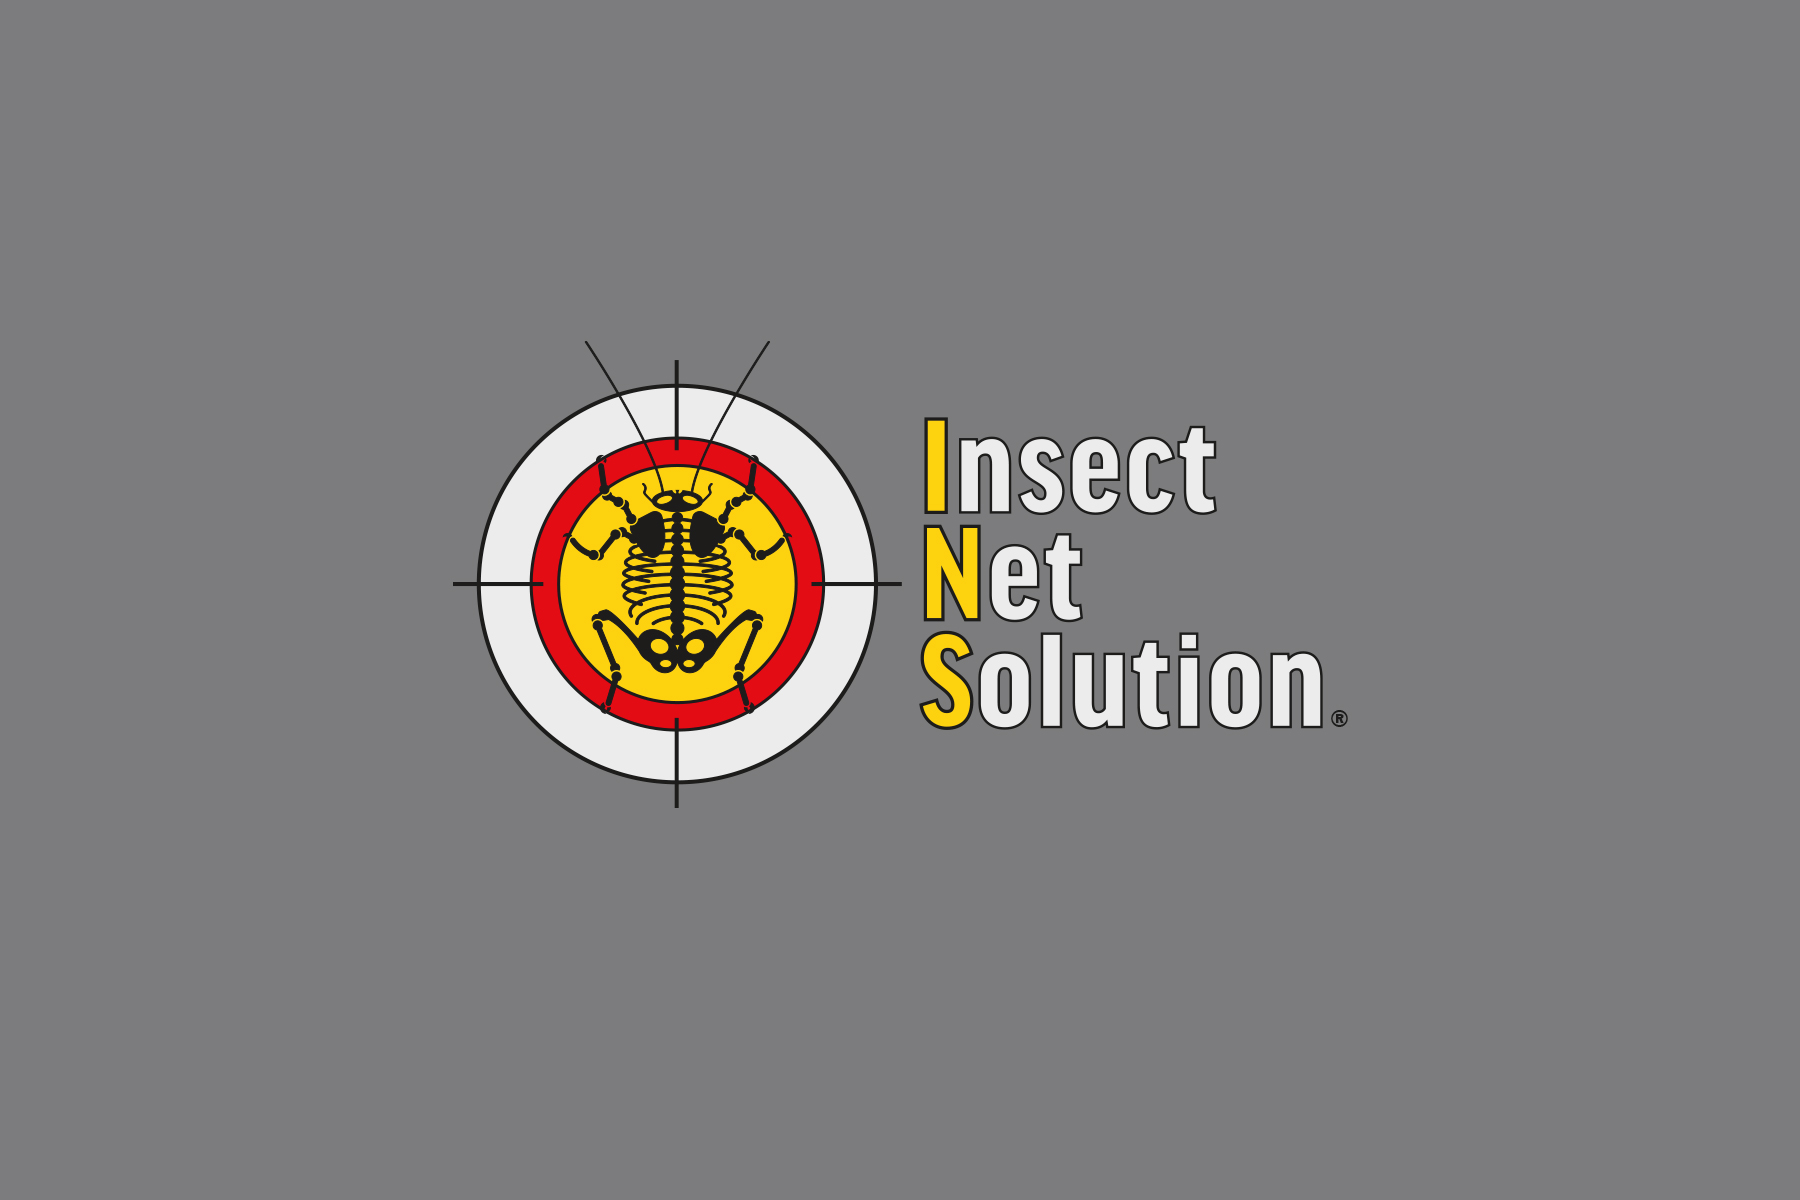 Logo Insect Net Solution